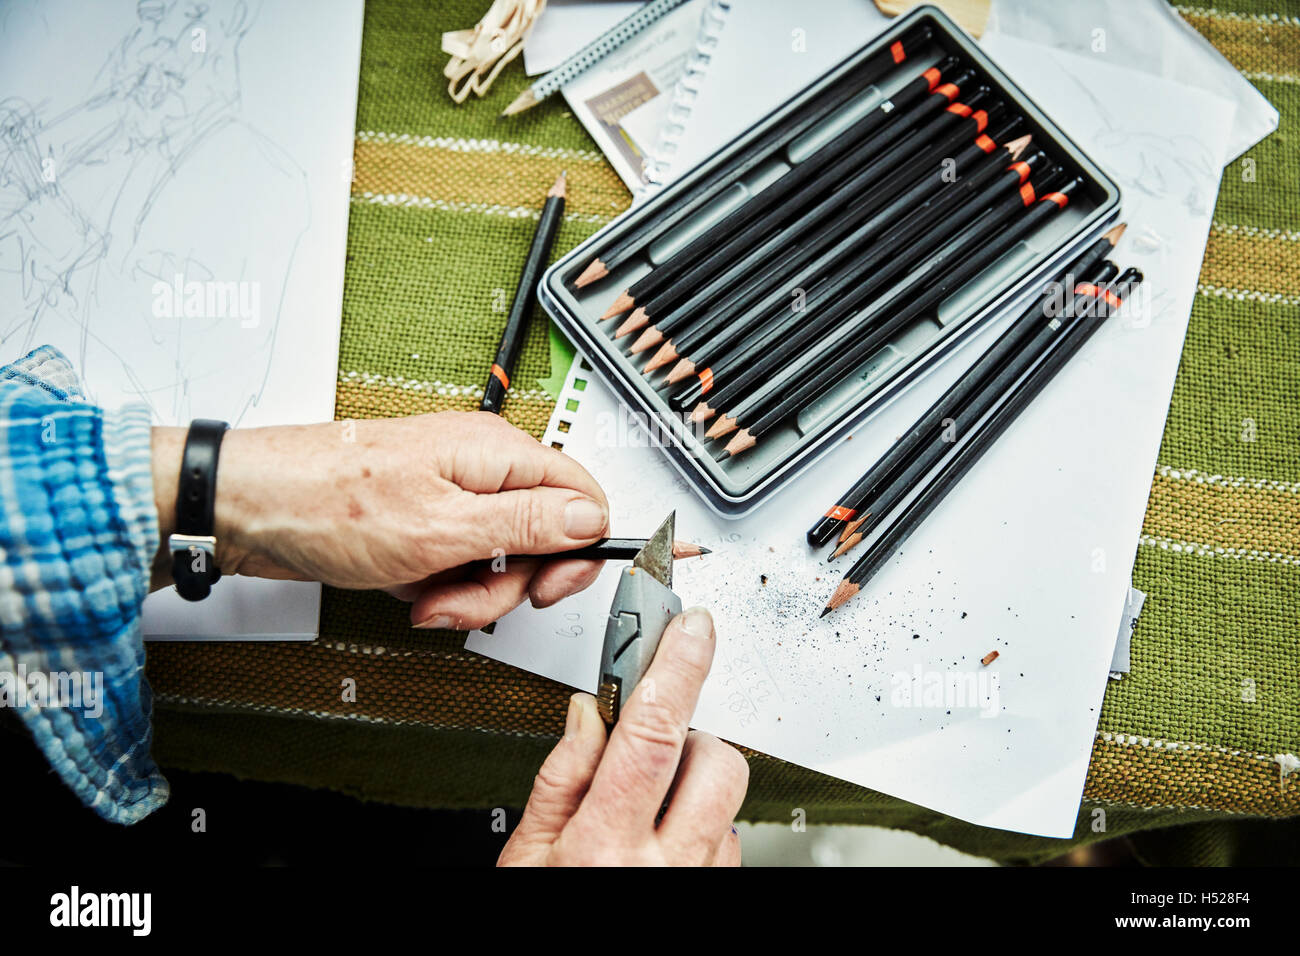 A person using a sharp blade, a craft knife, to sharpen lead pencils. Sketches on paper. - Stock Image